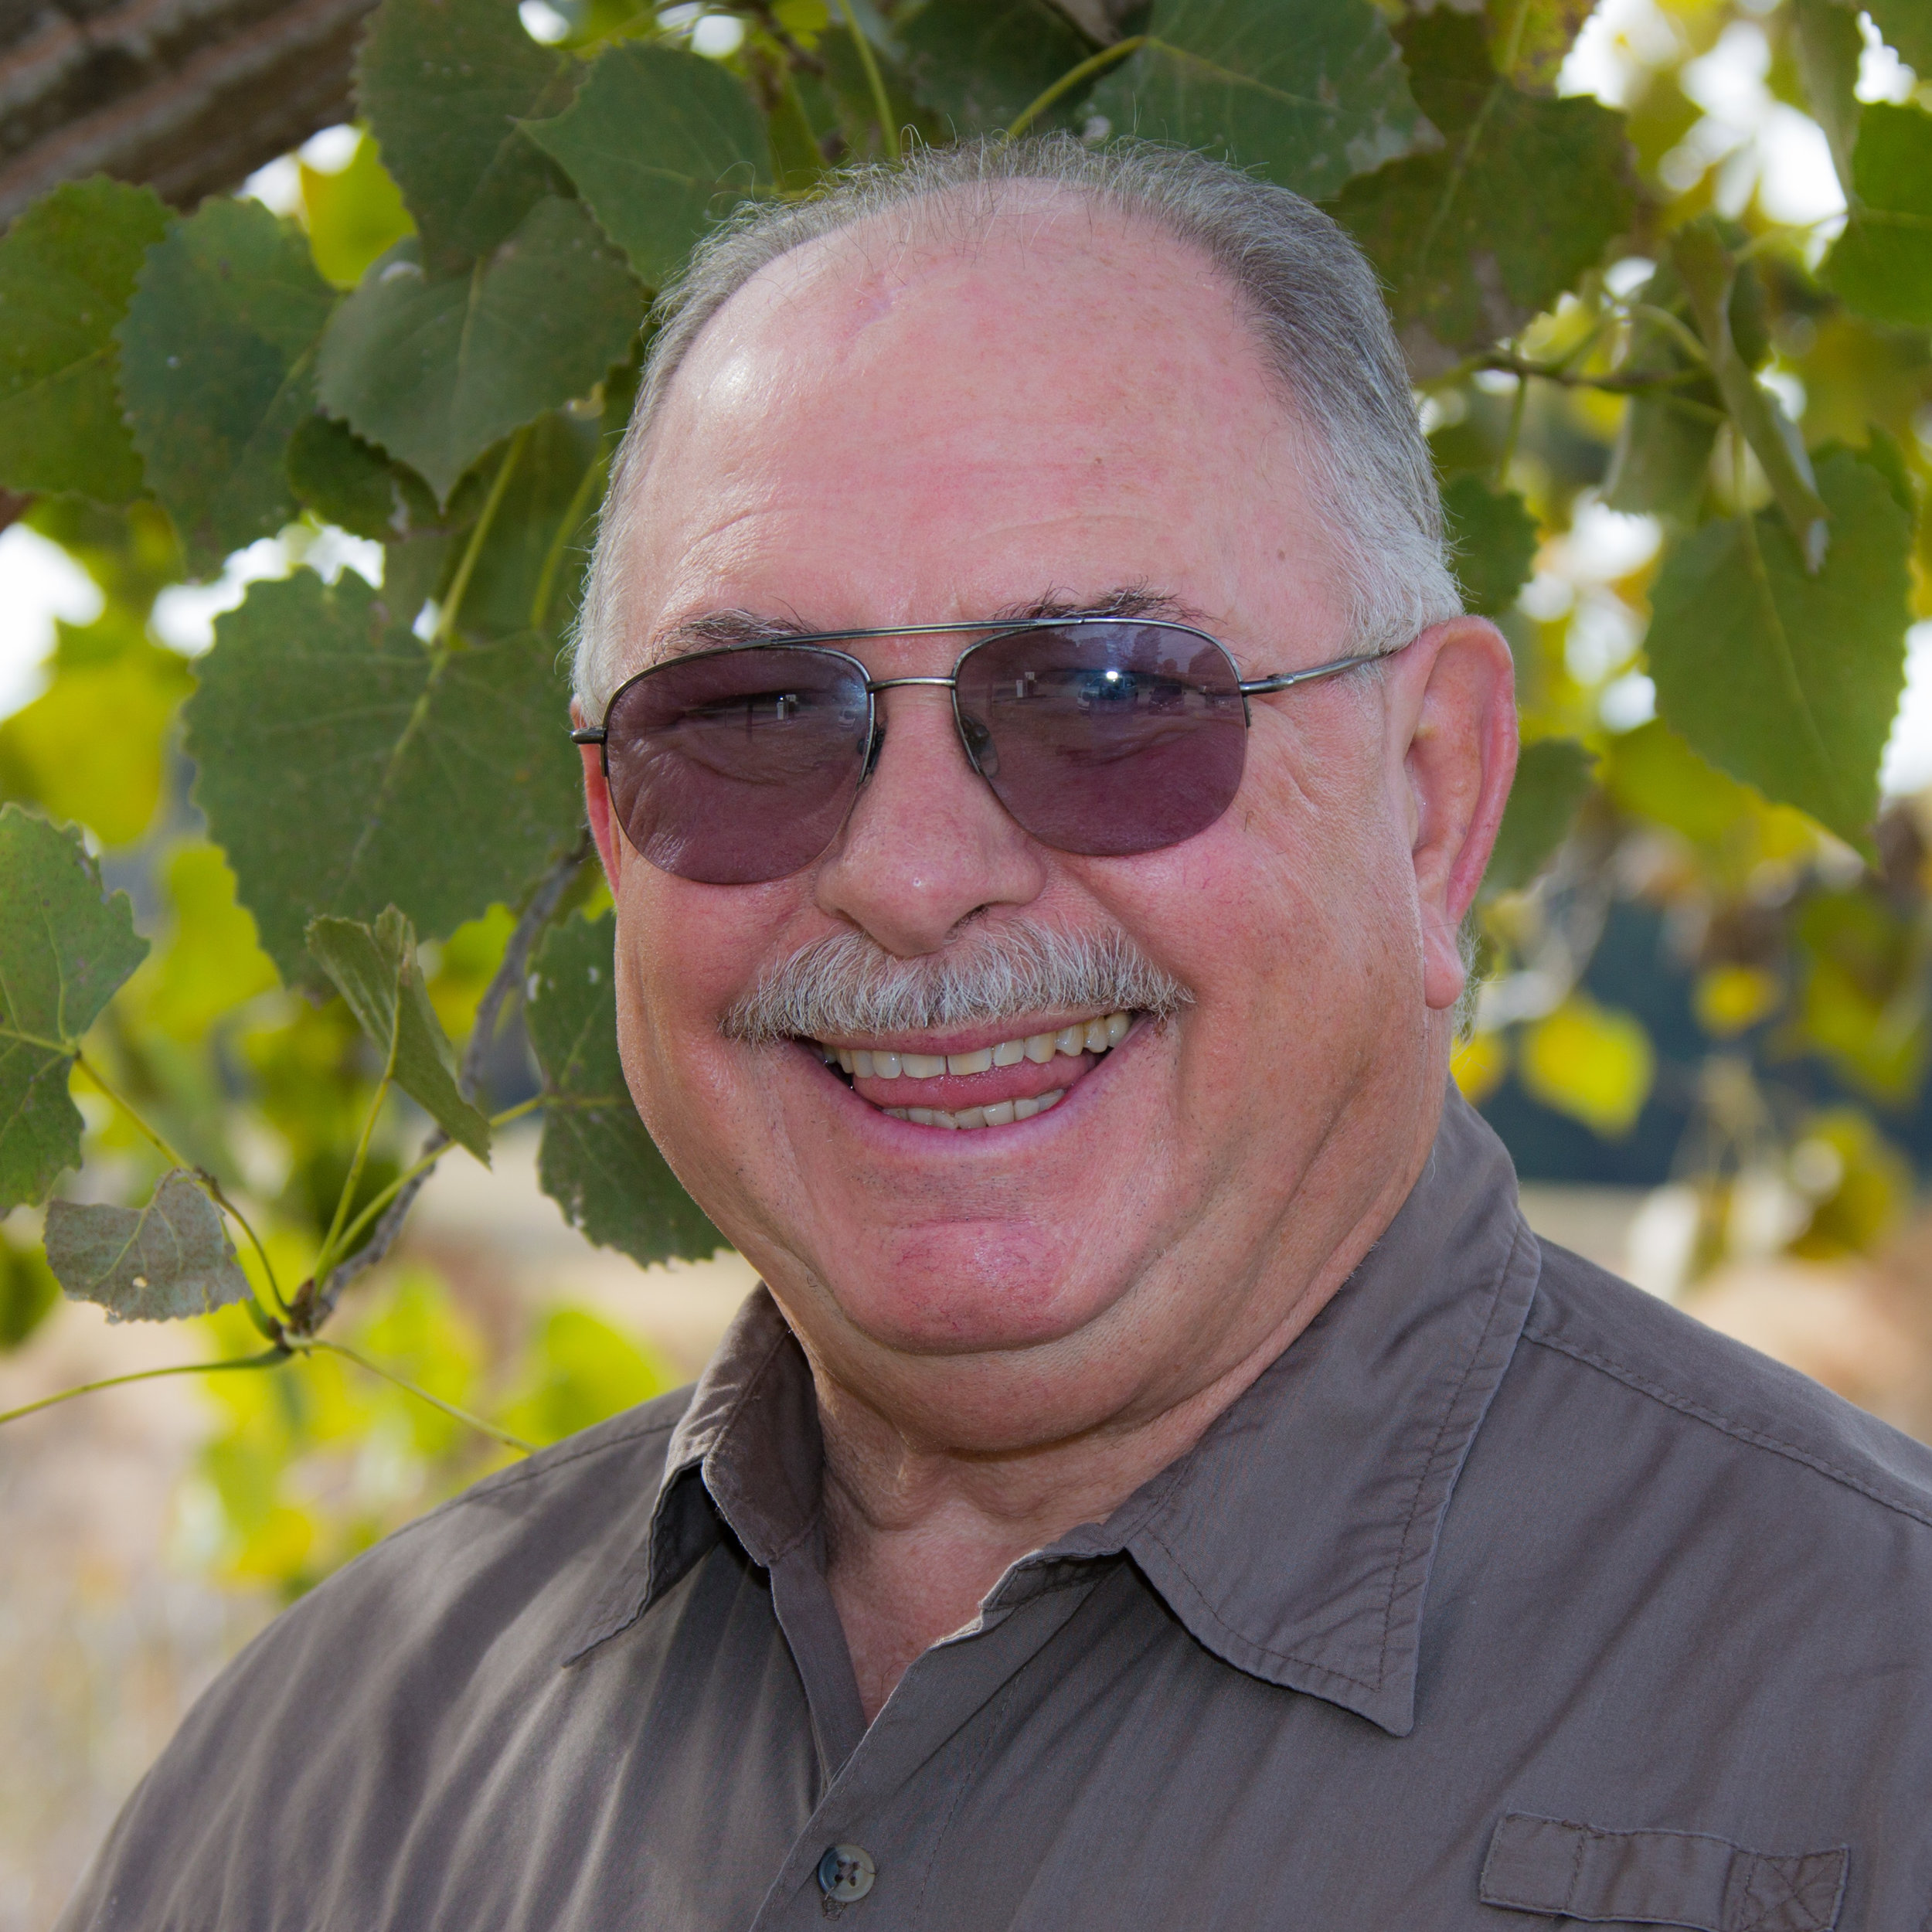 Papa T  Terry Morrow is Papa T. He has adopted us as a tasting room ambassador giving insightful tours and showcases his love for Kiepersol throughout the community.